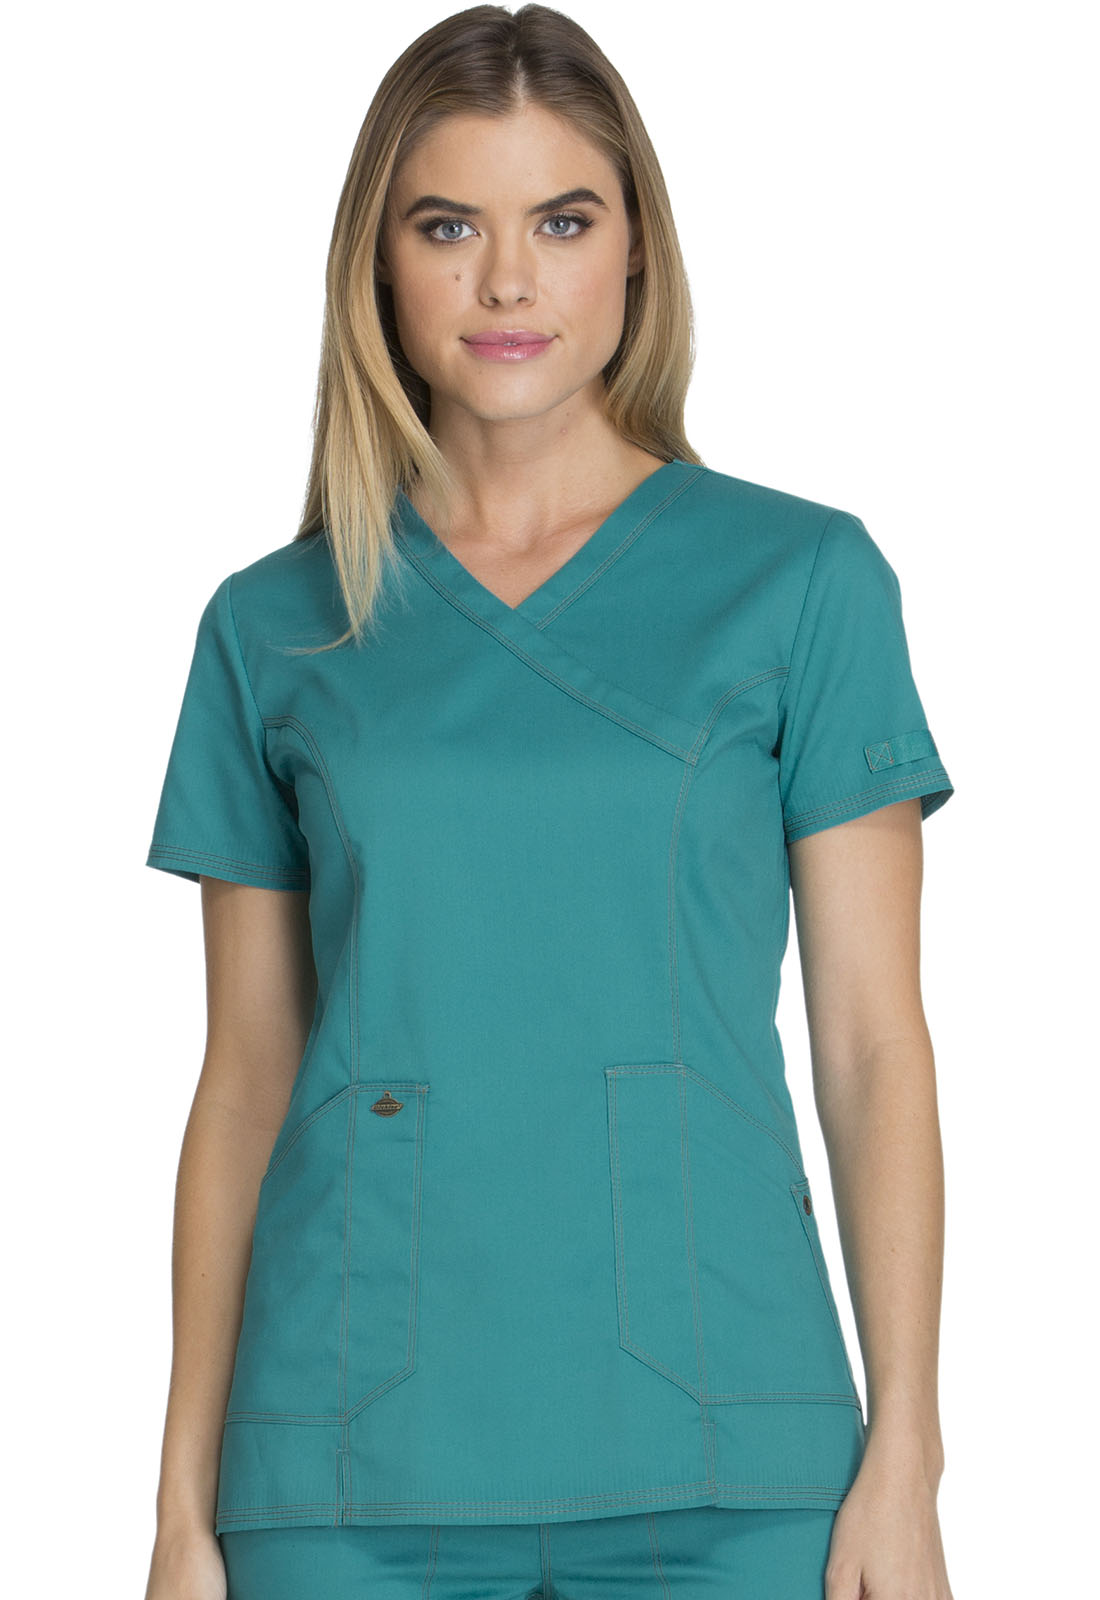 Scrubs By Design